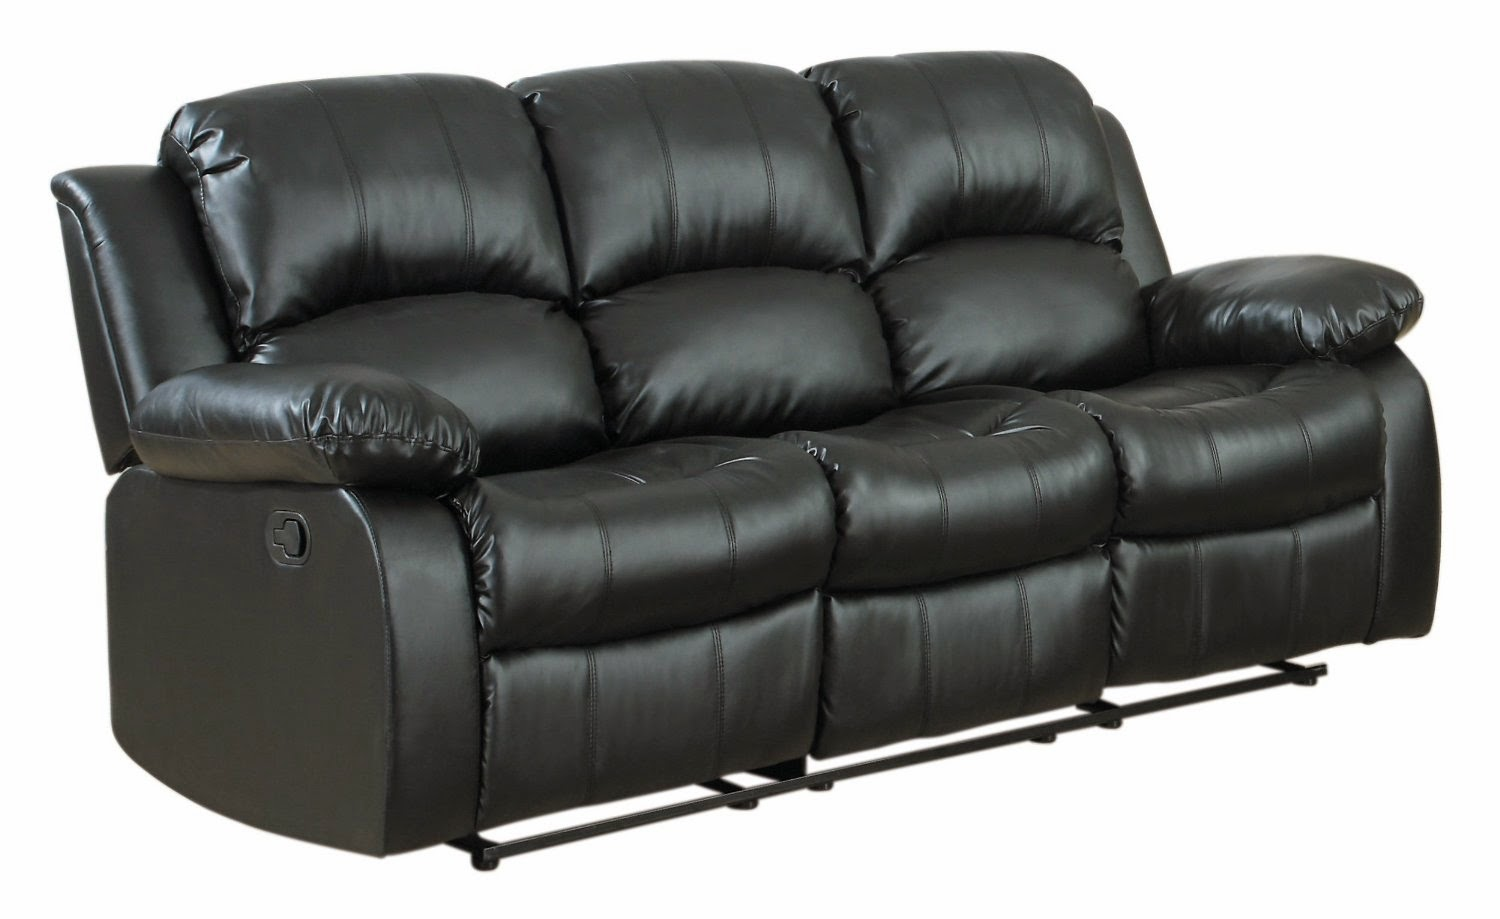 Reclining Sofas For Sale Berkline Leather Reclining Sofa